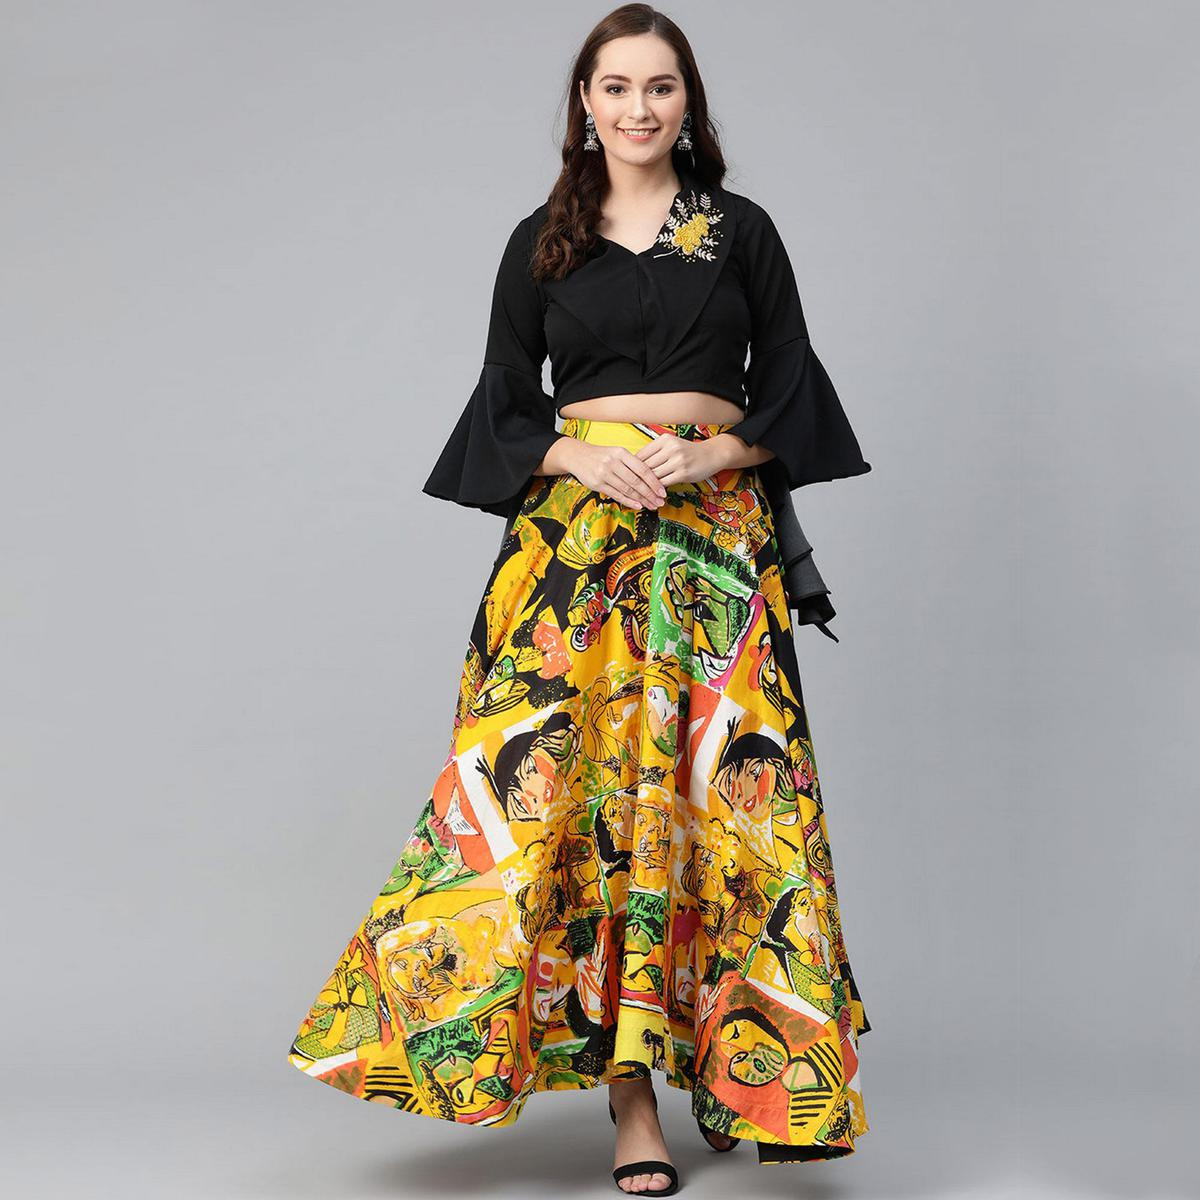 Pannkh - Women's Embroidered Crop Top With Picasso Printed Skirt